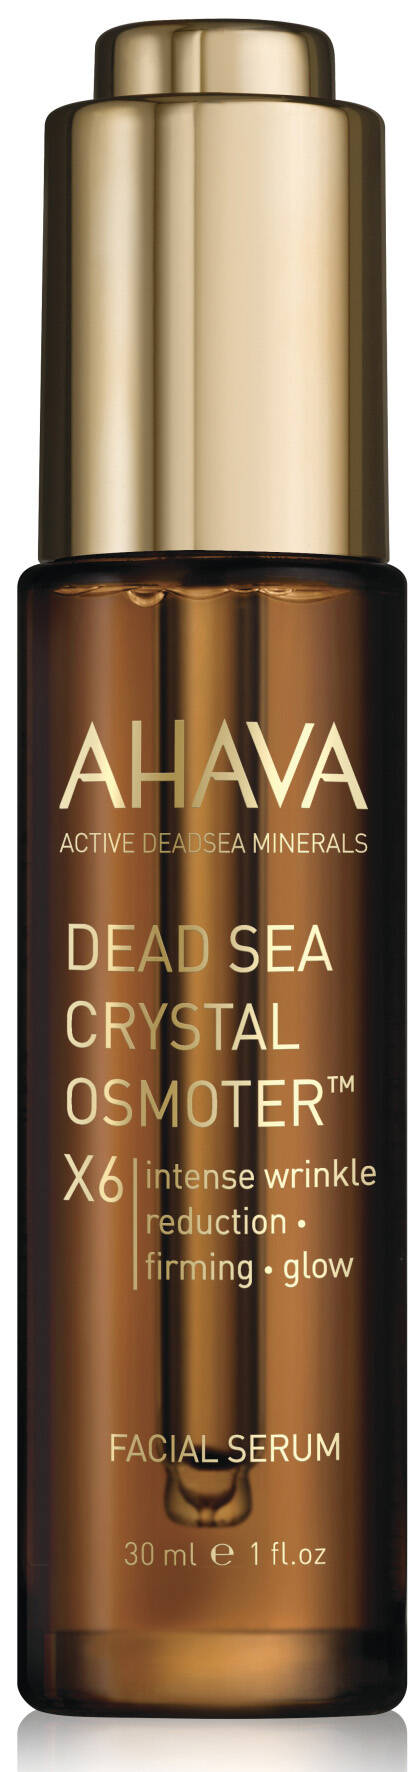 Dead Sea Crystal Osmoter™ X6